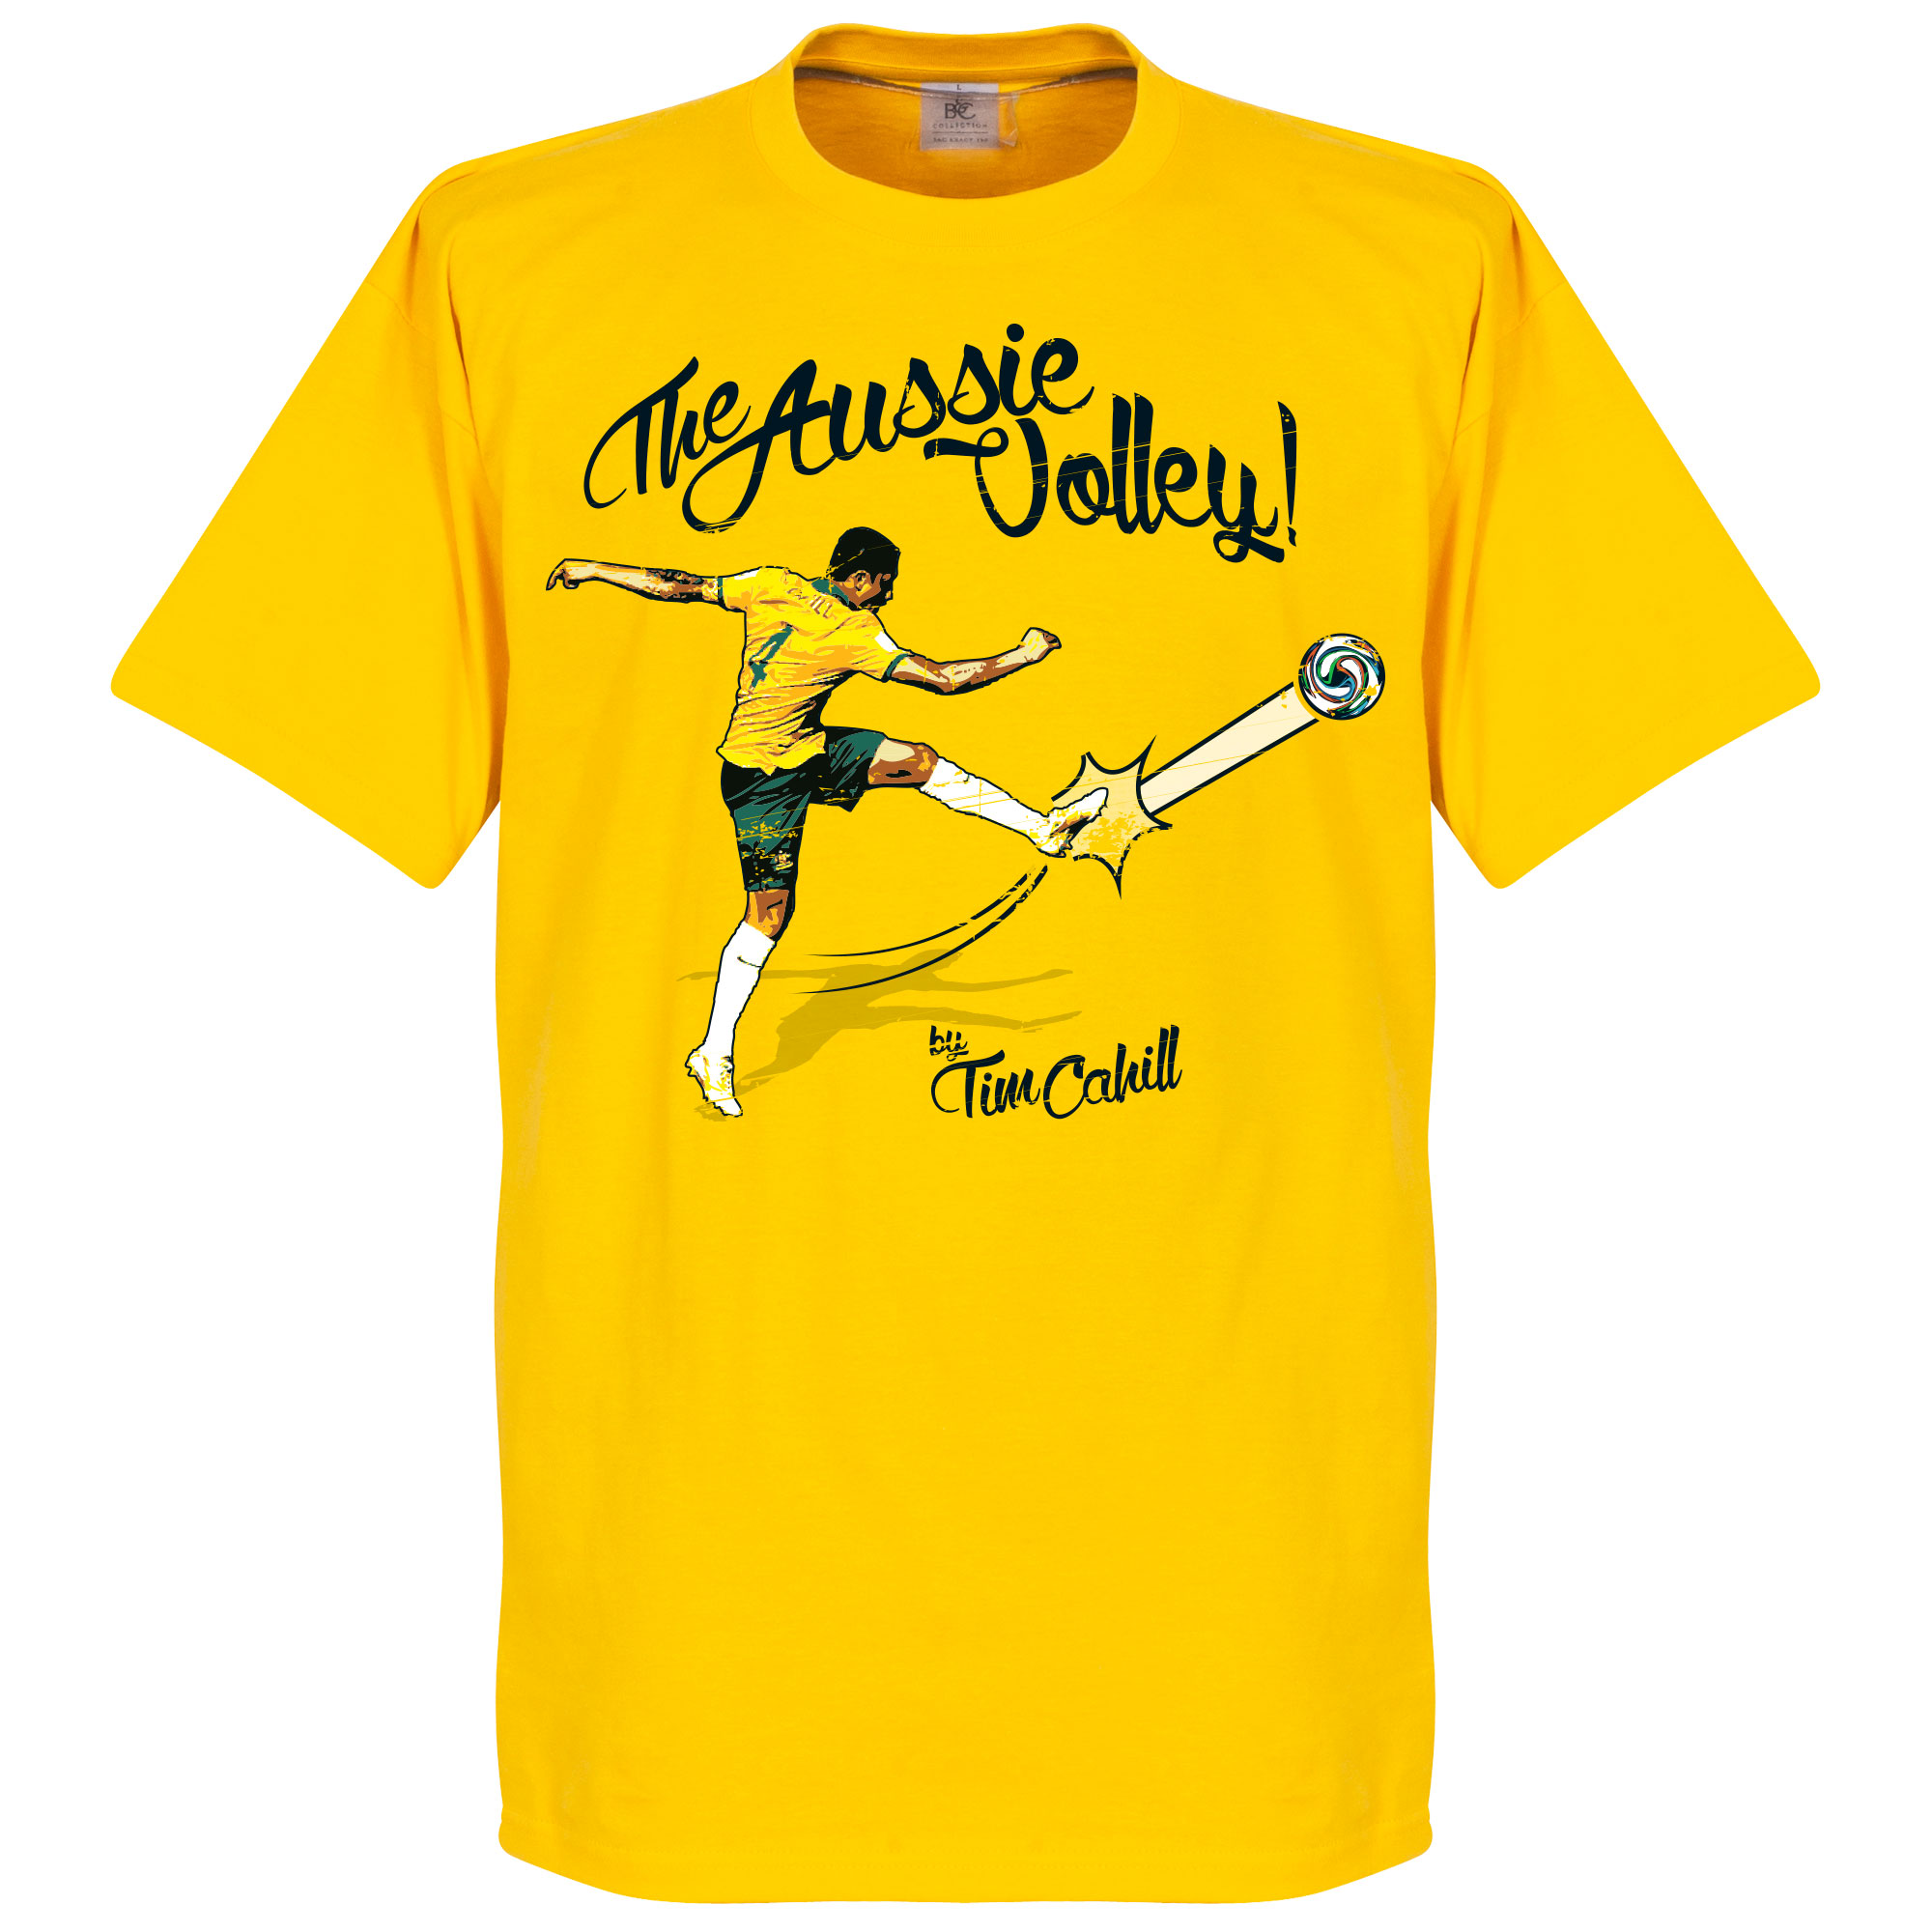 Tim Cahill The Aussie Volley Tee - Yellow - XS